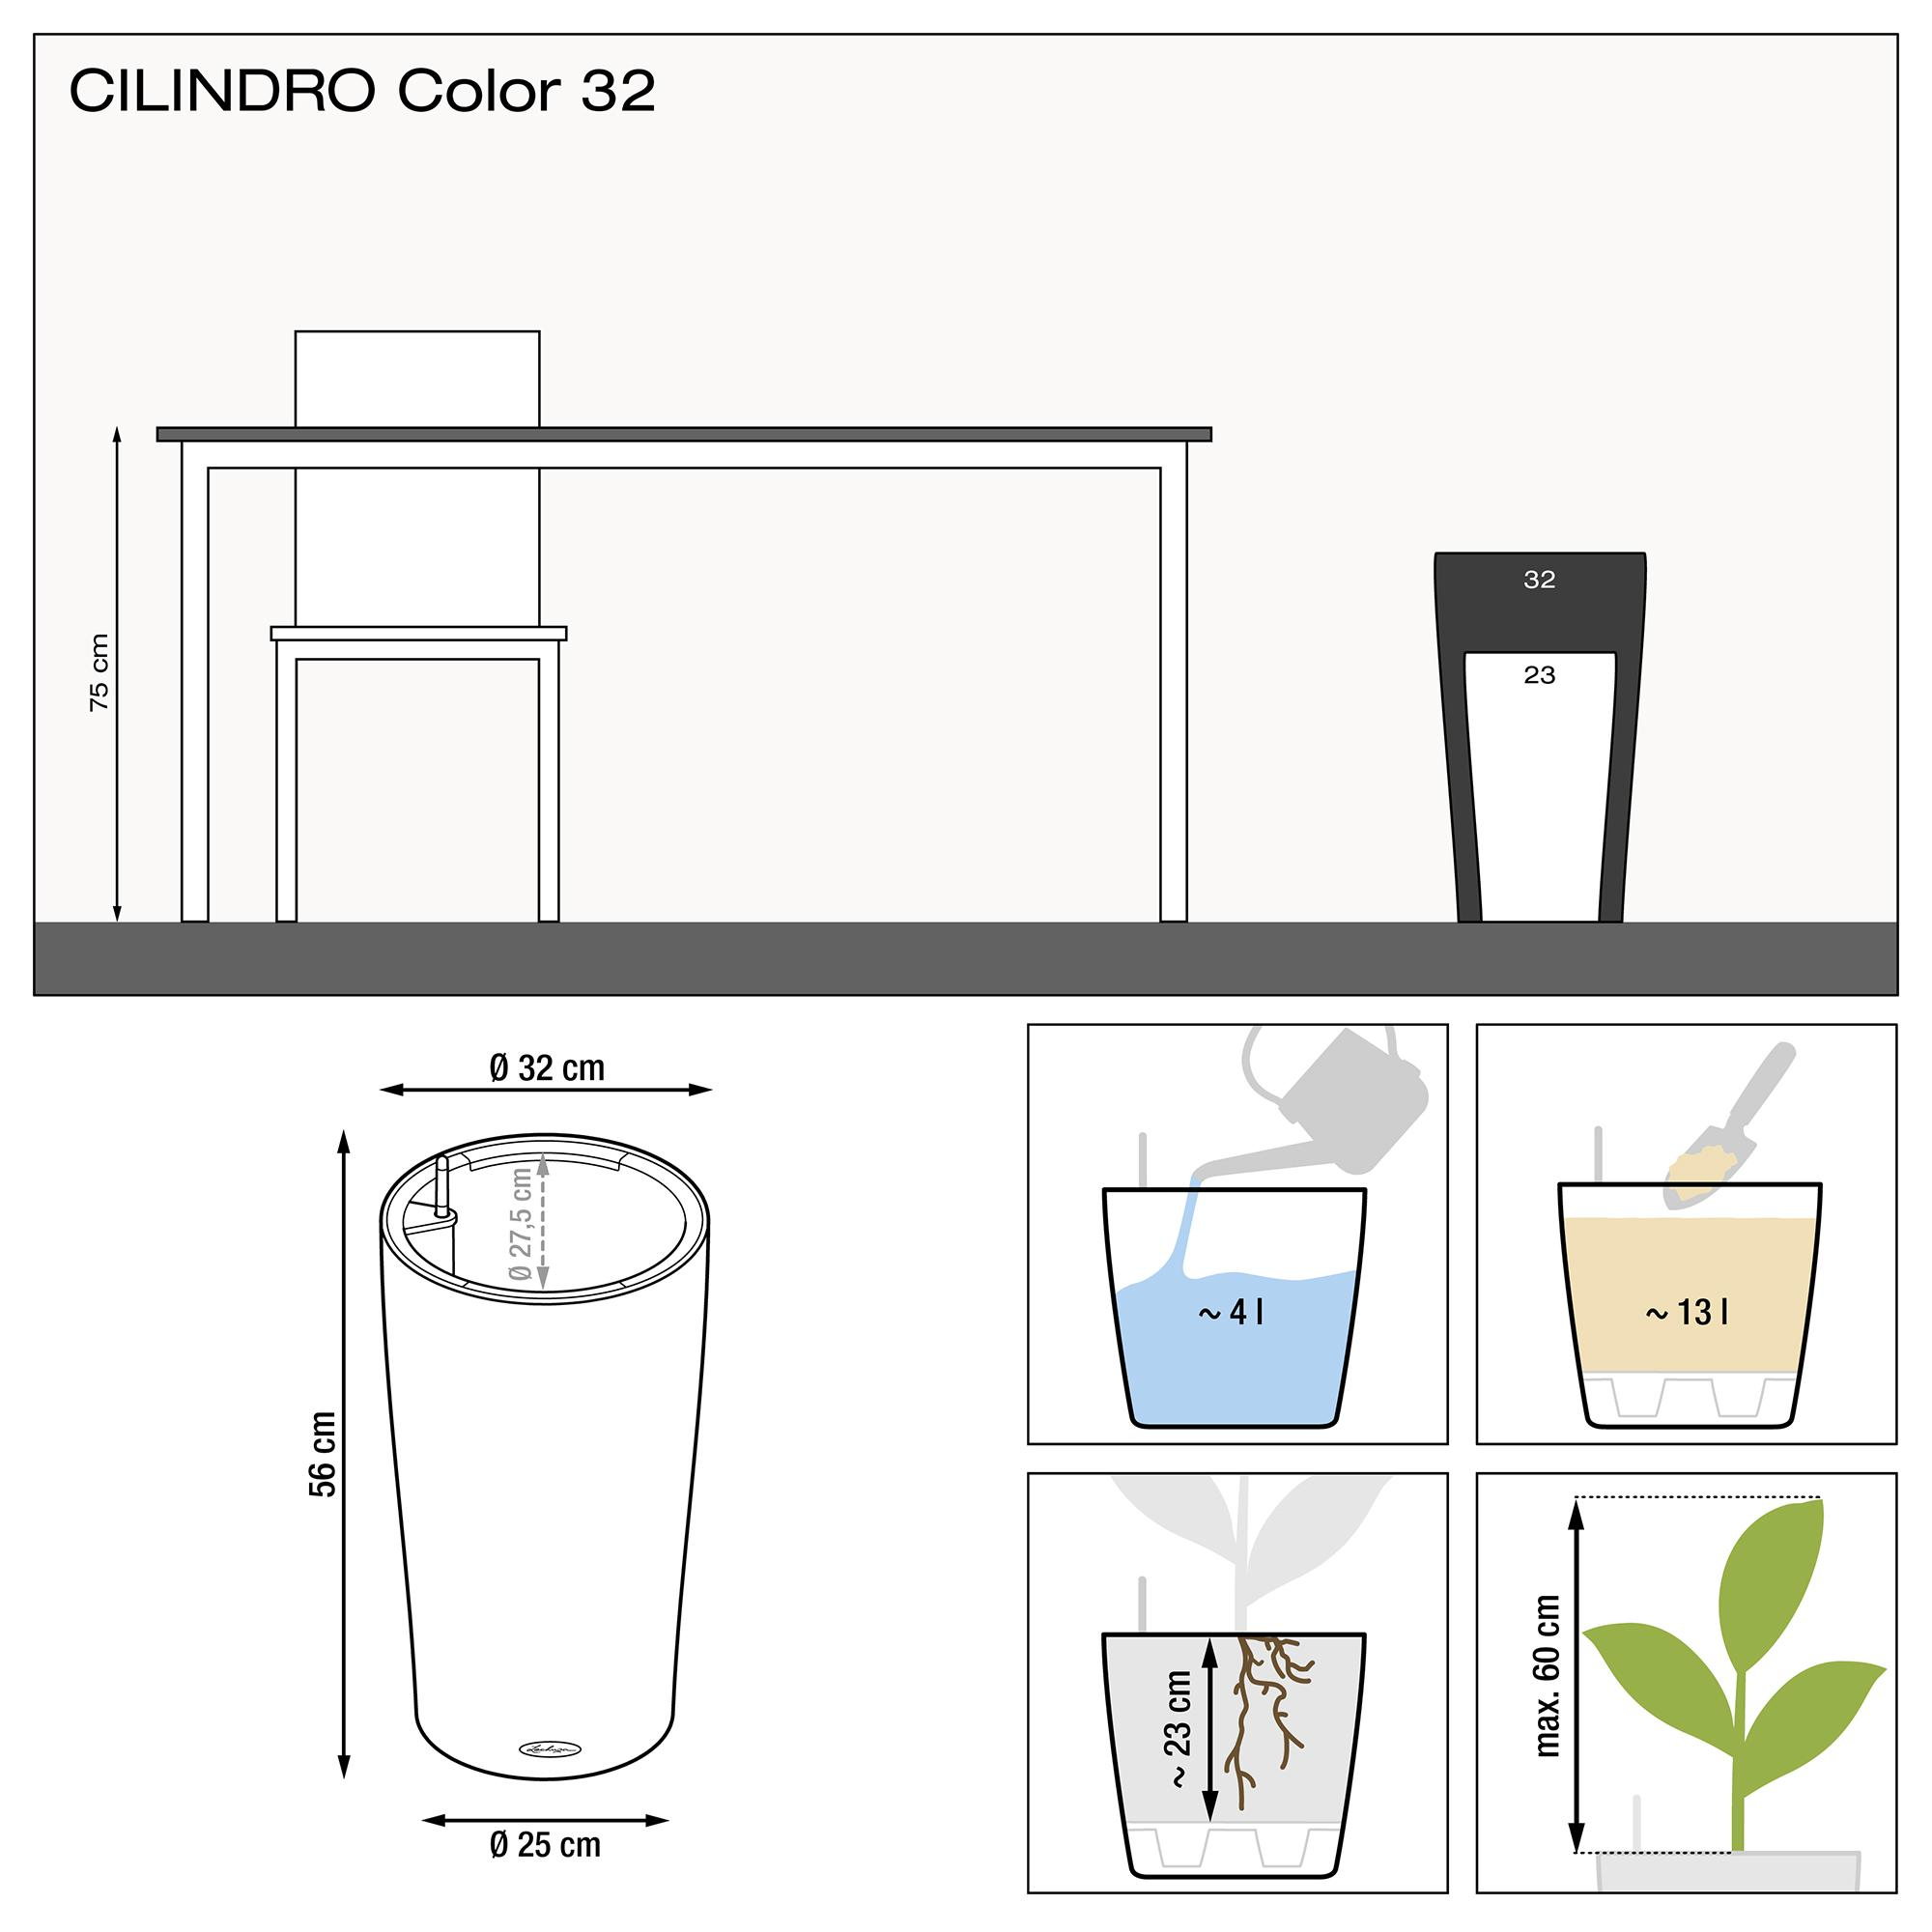 le_cilindro-color32_product_addi_nz